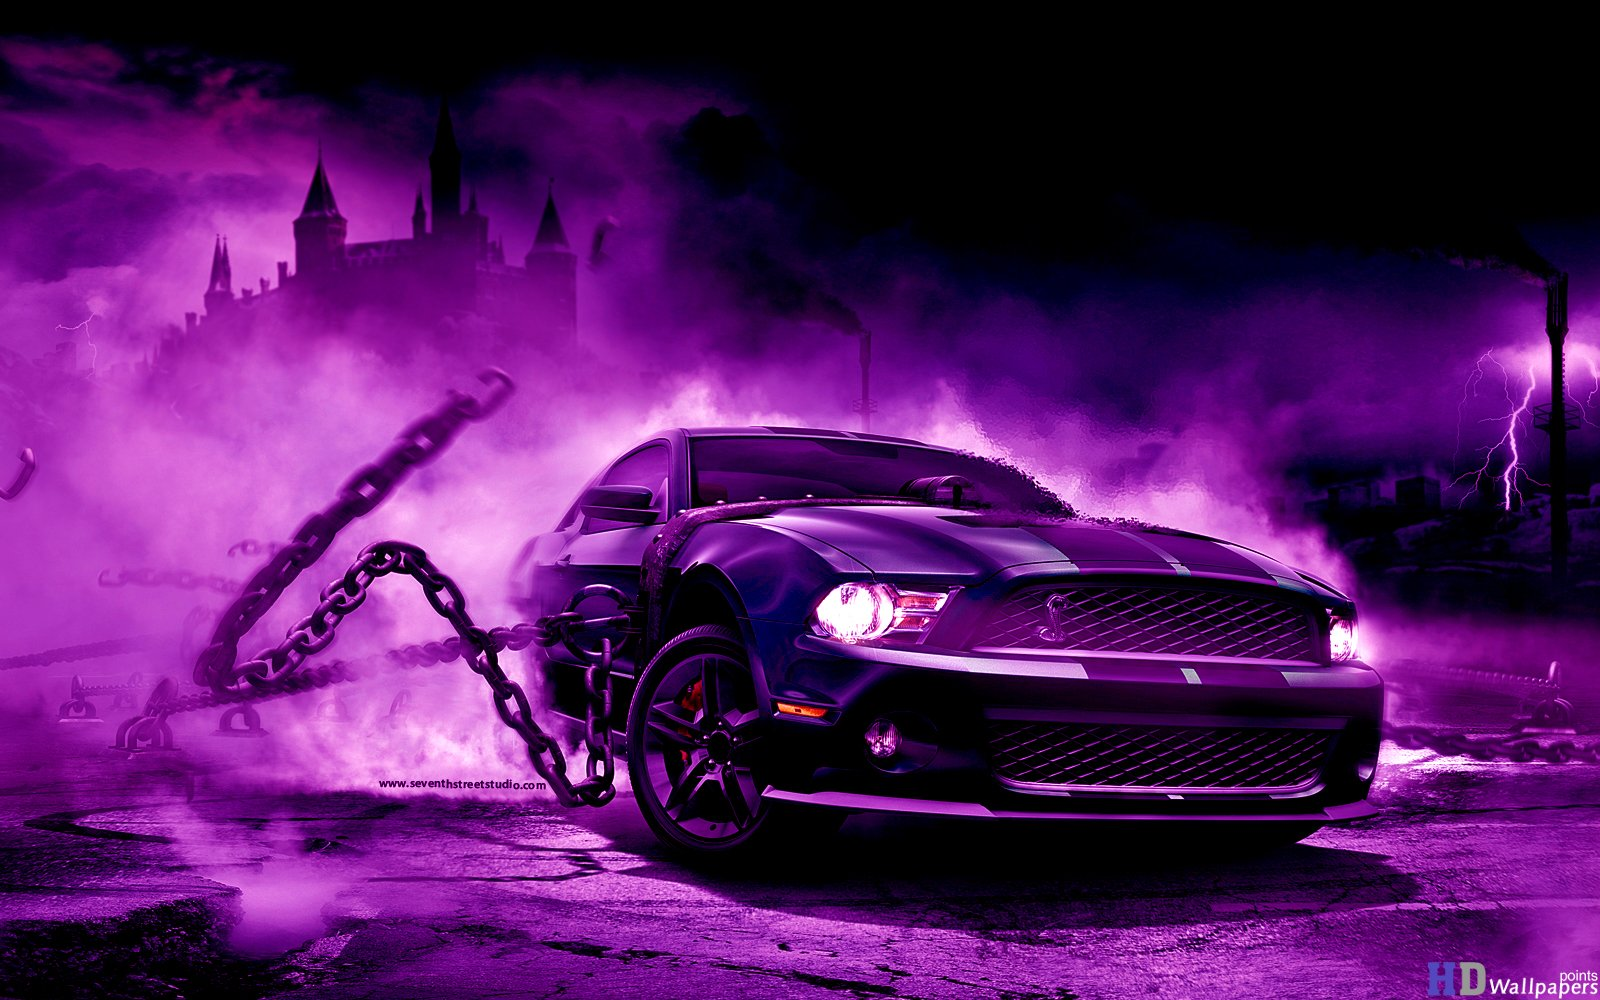 cool car wallpapers for desktop - wallpapersafari